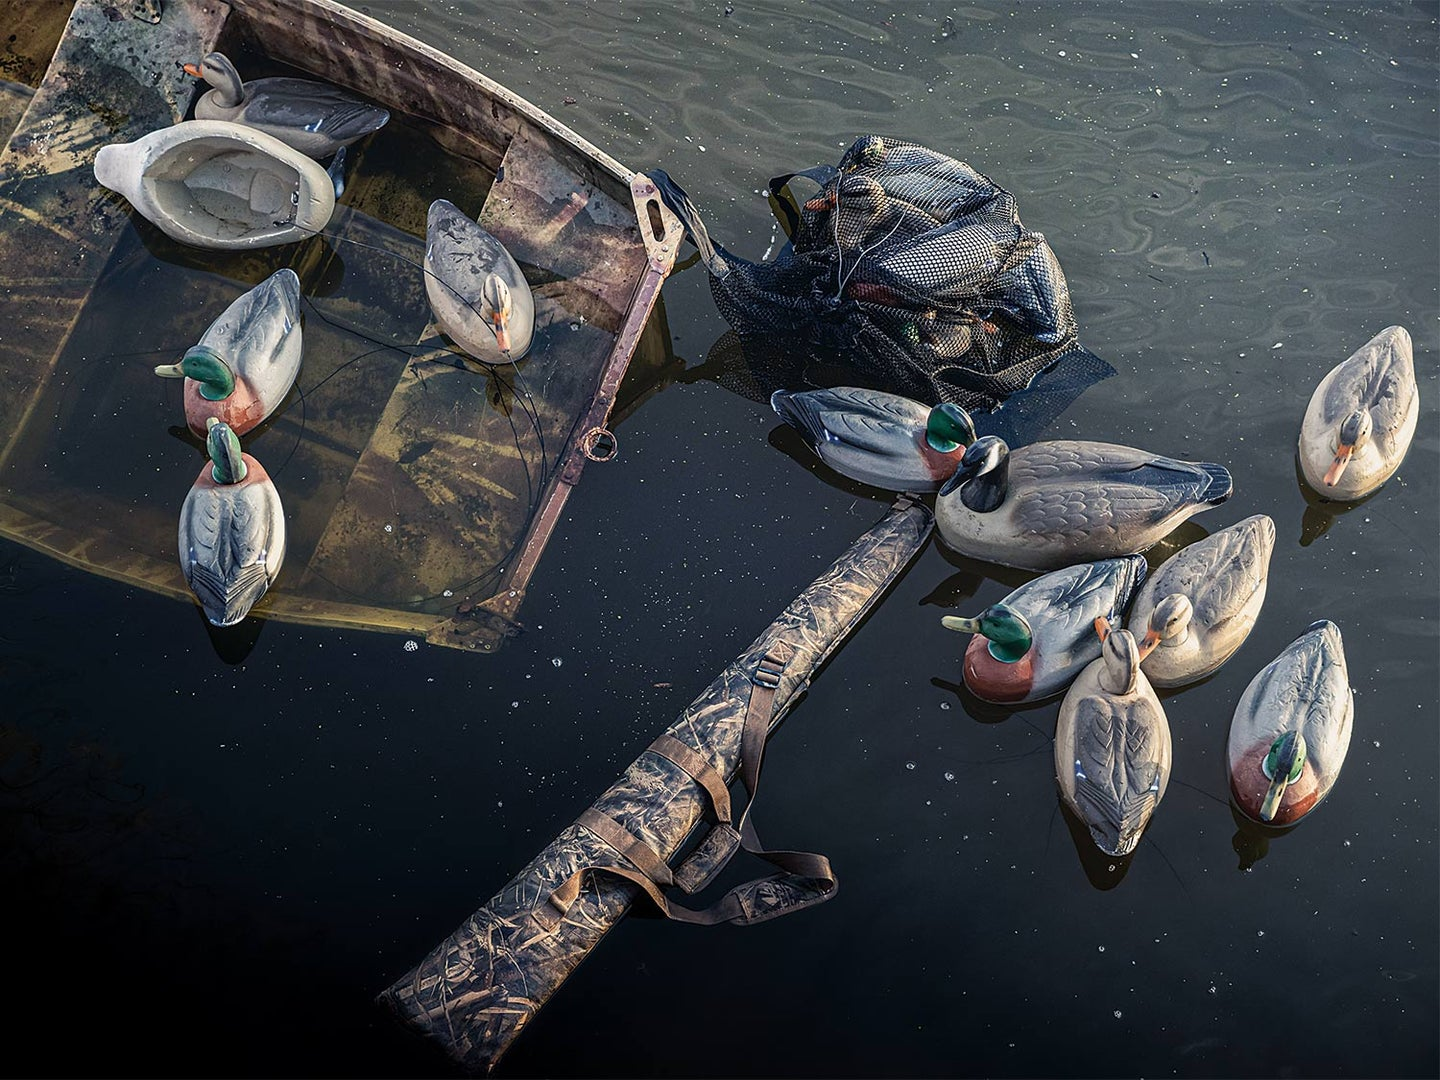 A capsized rowboat with duck decoys and gun case.